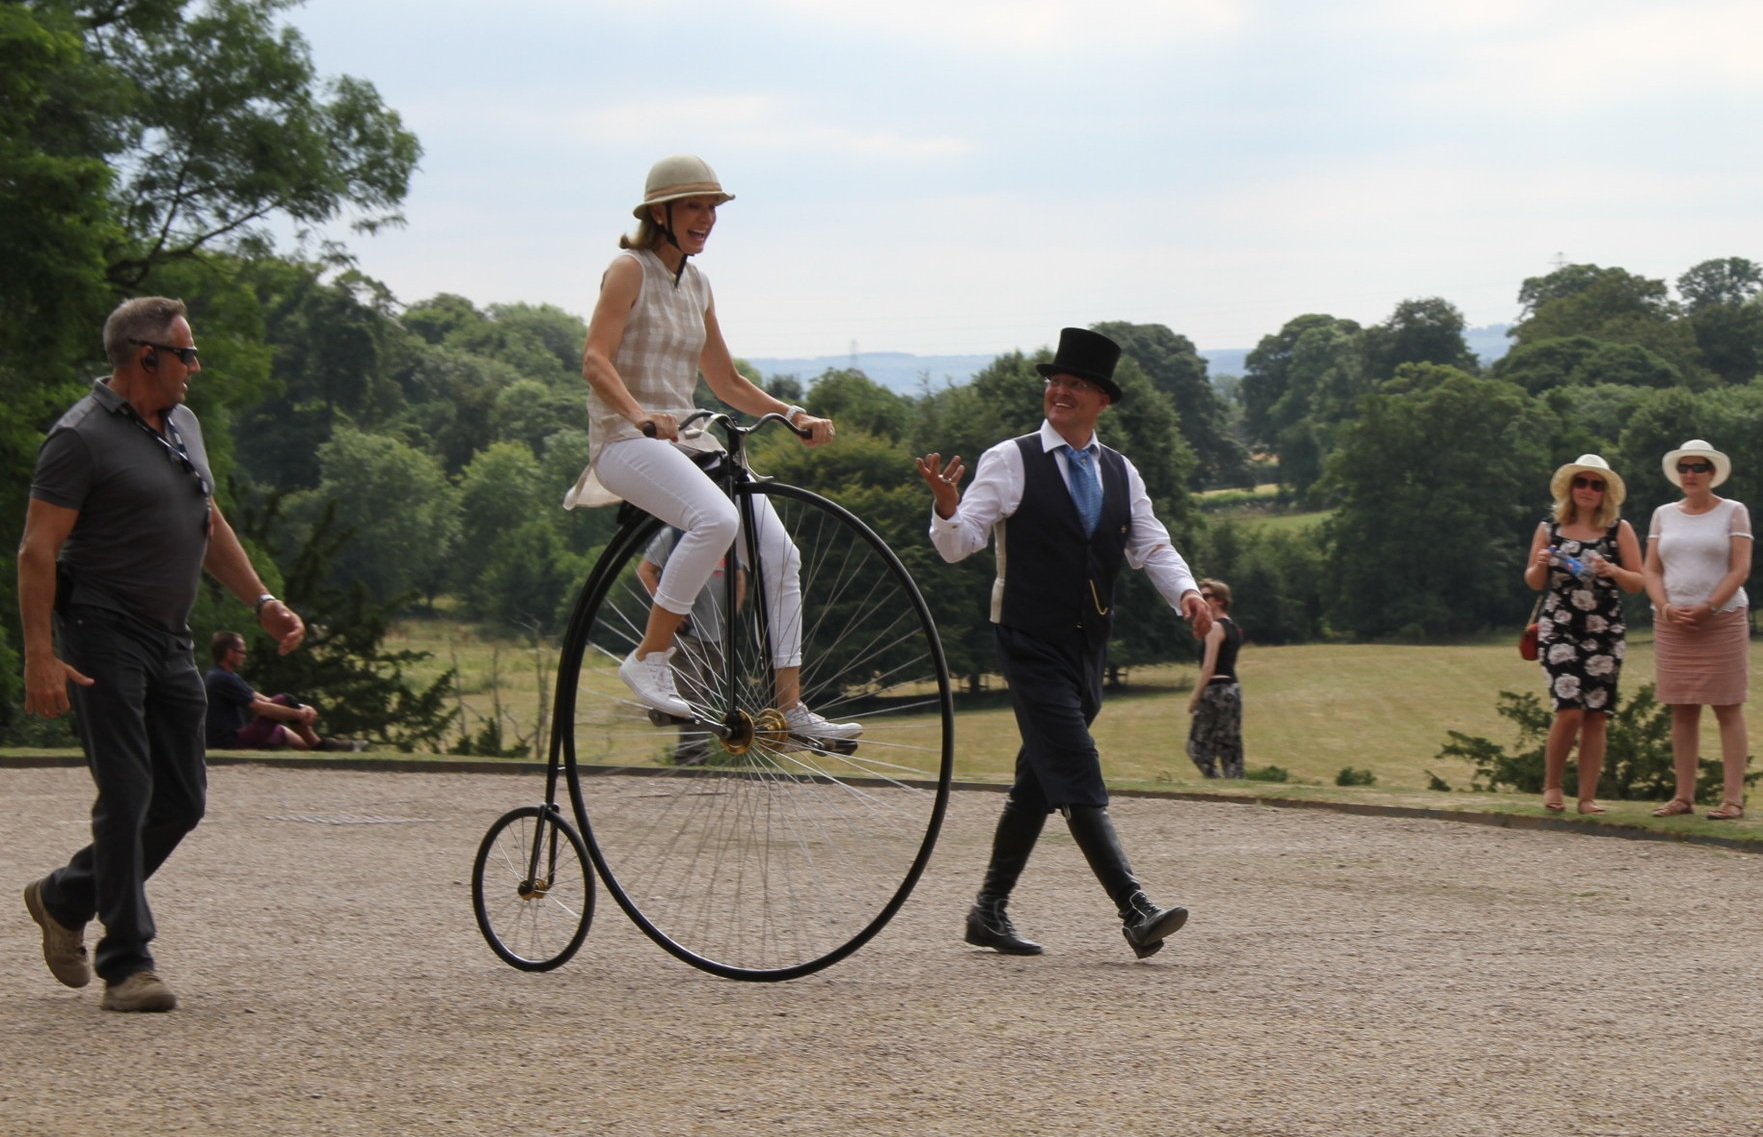 CONFIDENCE ASSURED - From never riding a Penny Farthing, to mastering a machine from the Victorian Era is our commitment in our actor/presenter training services. This has come from years of skilled nurturing, understanding and patience.Mr Phoebus offers skilled riders and stunt doubles for more complex production demands.